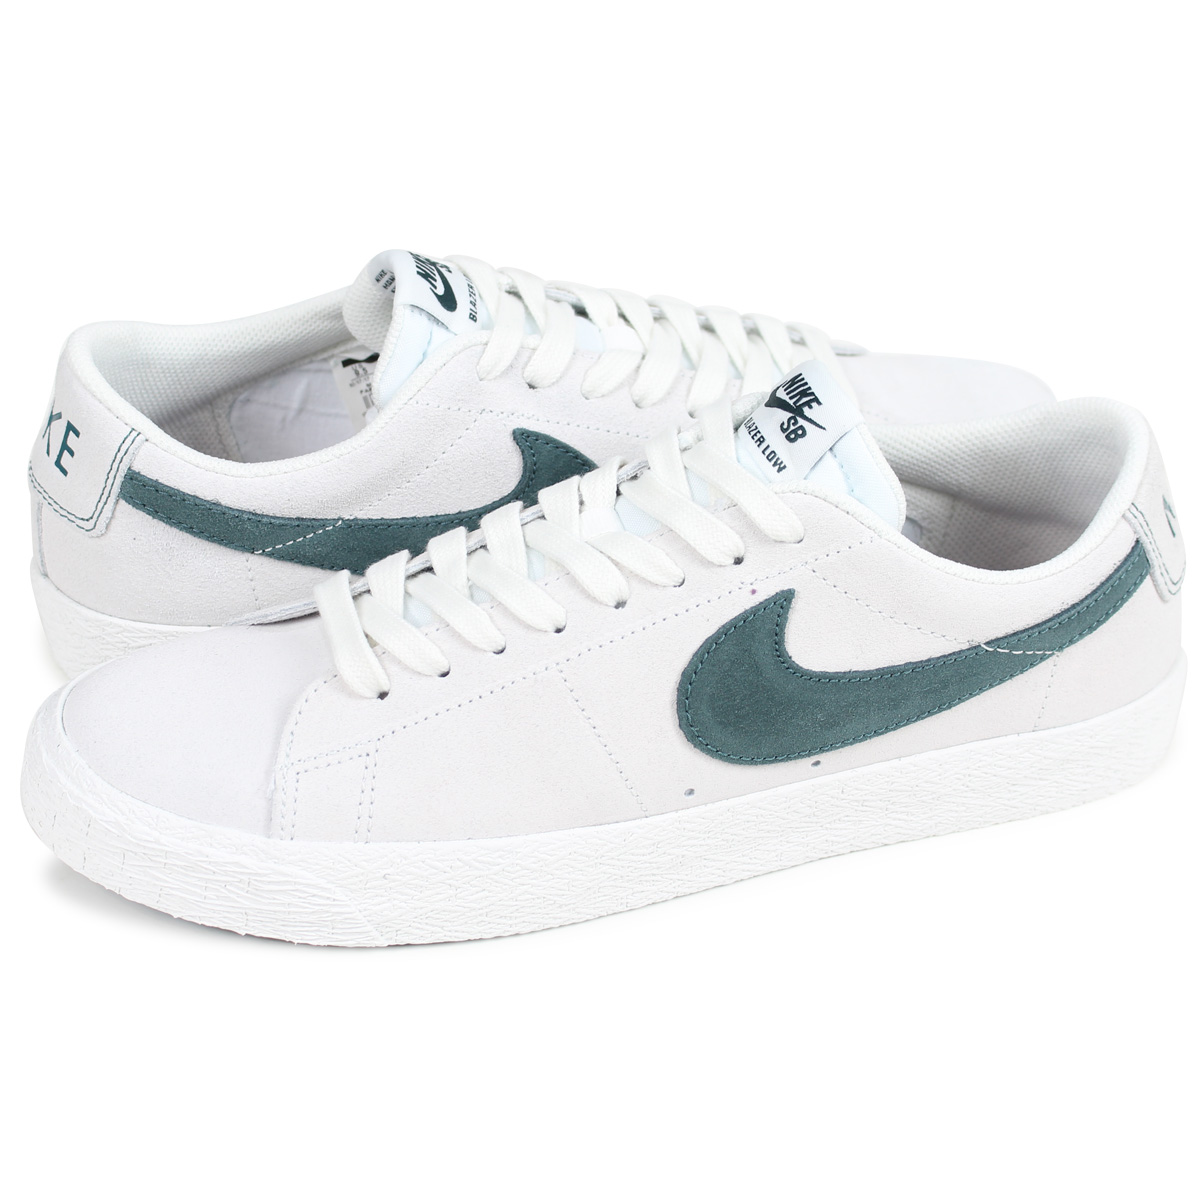 online retailer ebc37 aa4c7 NIKE BLAZER ZOOM LOW Nike SB blazer low sneakers men 864,347-101 off-white  [load planned Shinnyu load in reservation product 3/30 containing]